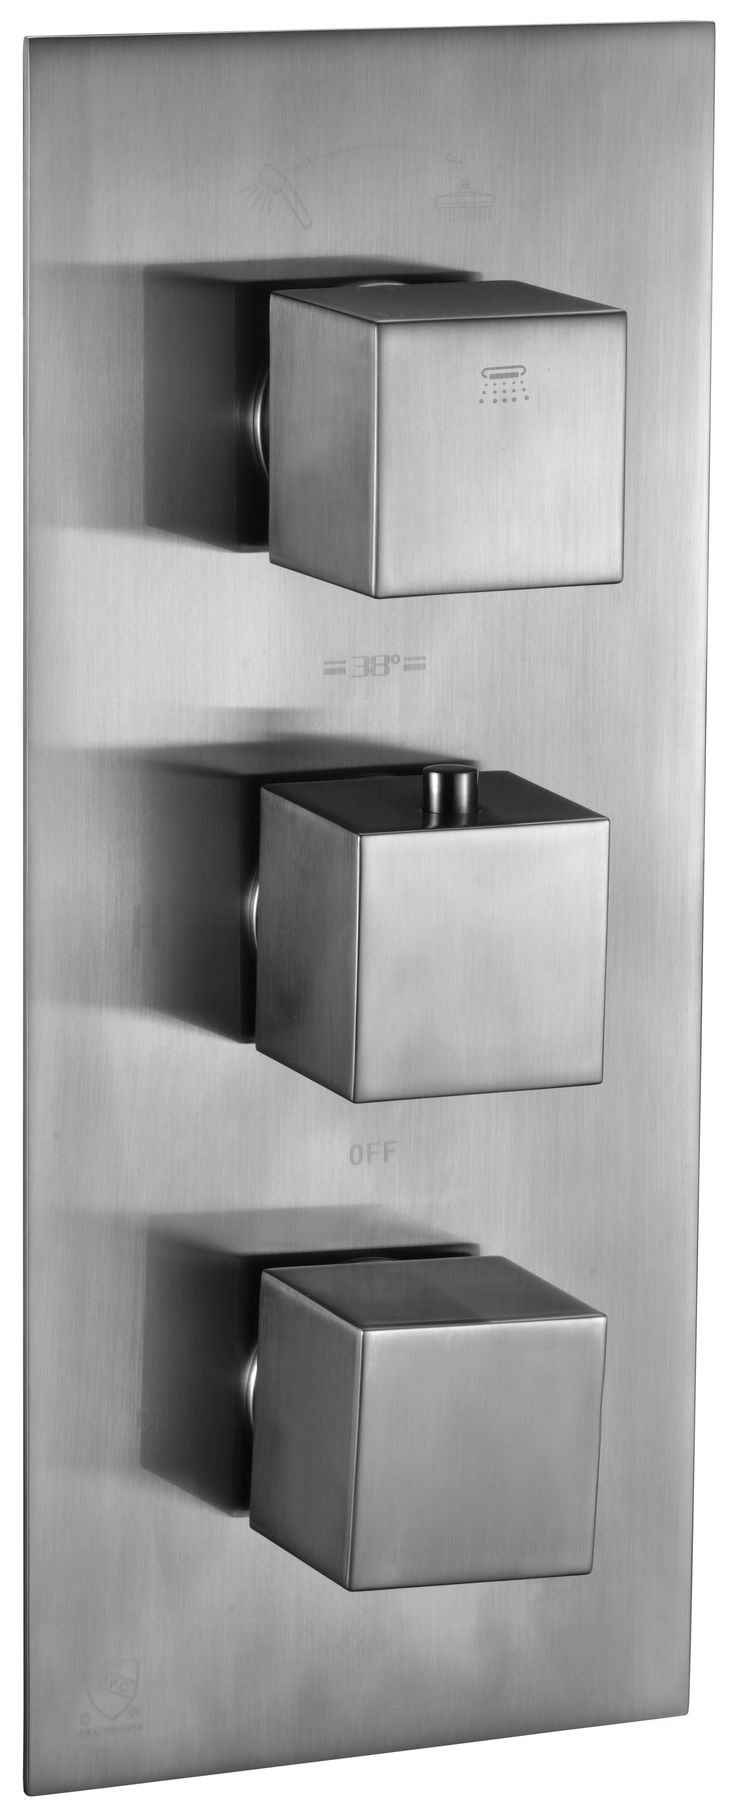 ALFI brand AB2701-BN Brushed Nickel Square 2 Way Thermostatic Shower Mixer